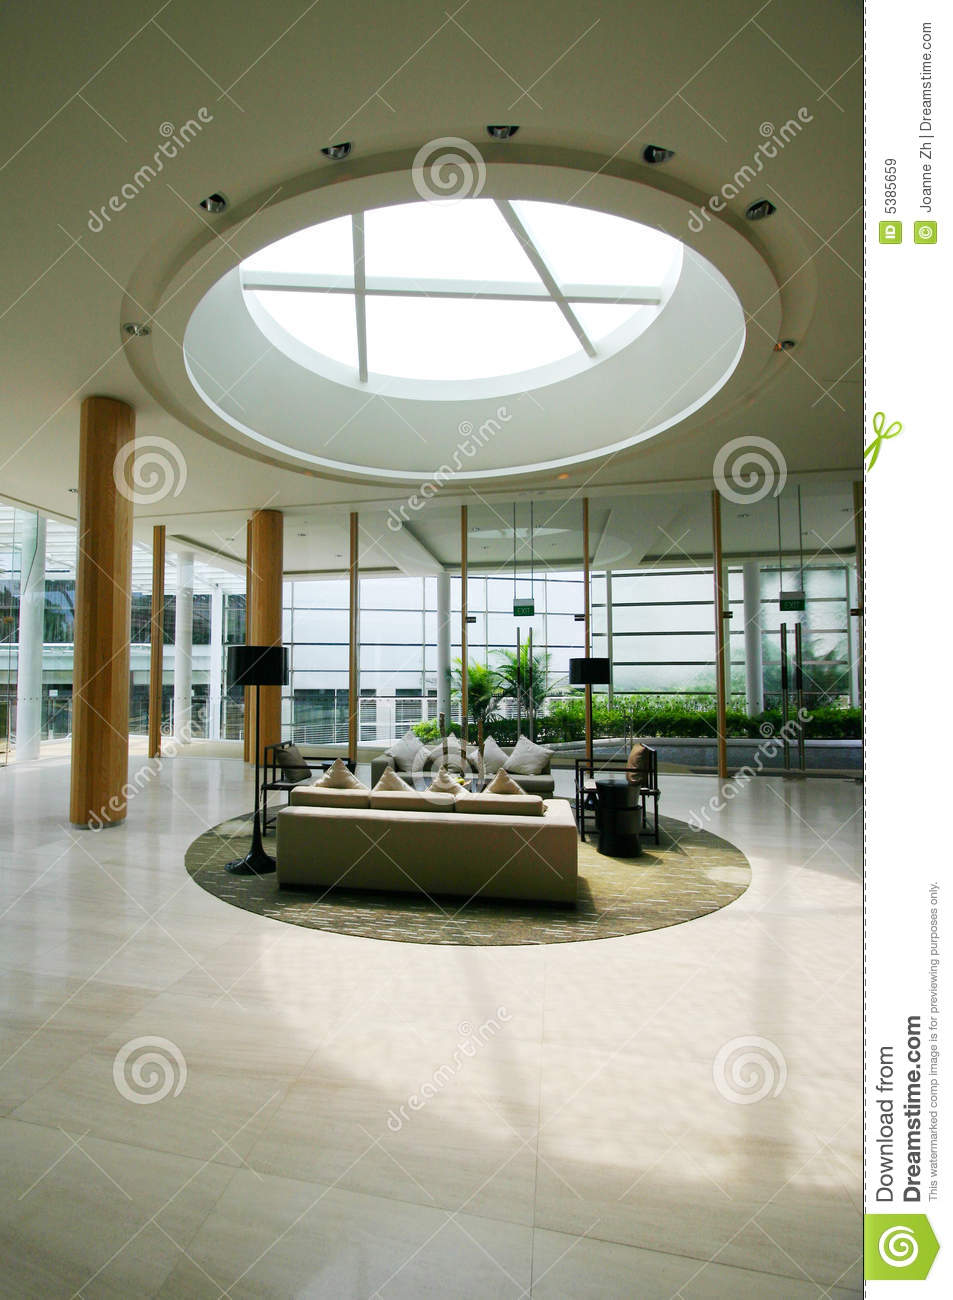 Hotel Foyer Decor : Modern holiday resorts foyer interior royalty free stock